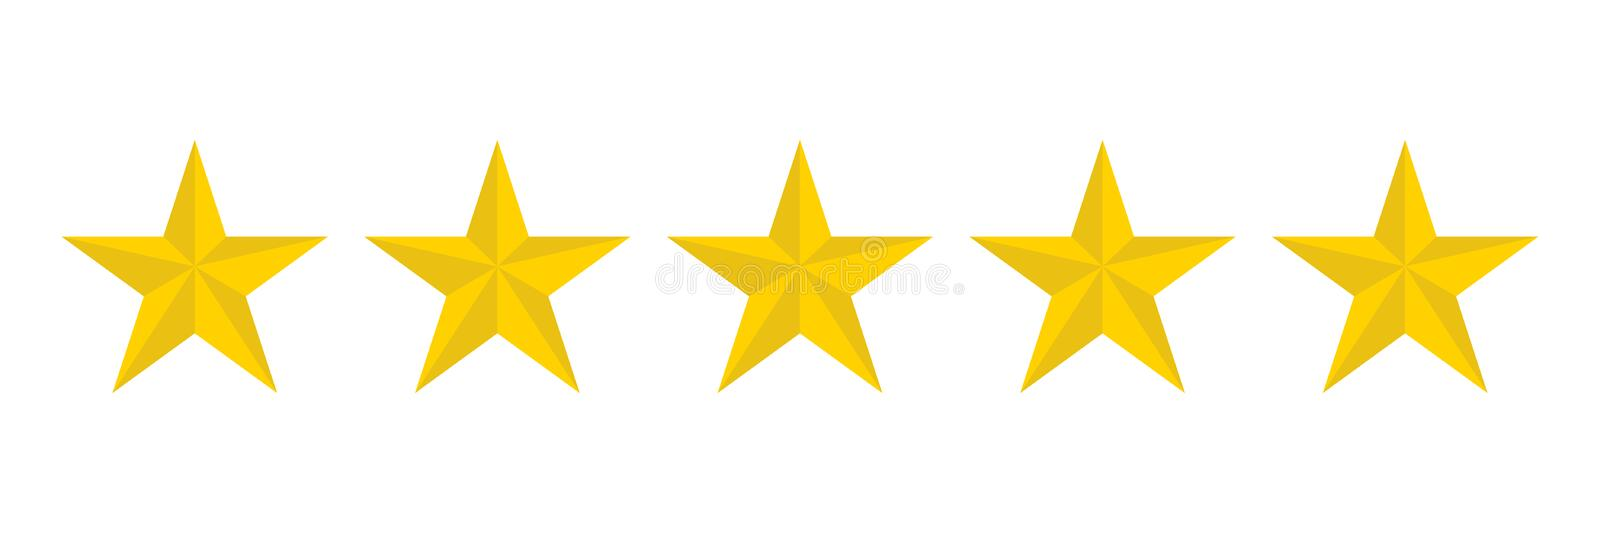 Stars five icon on a white background, vector illustration stock illustration